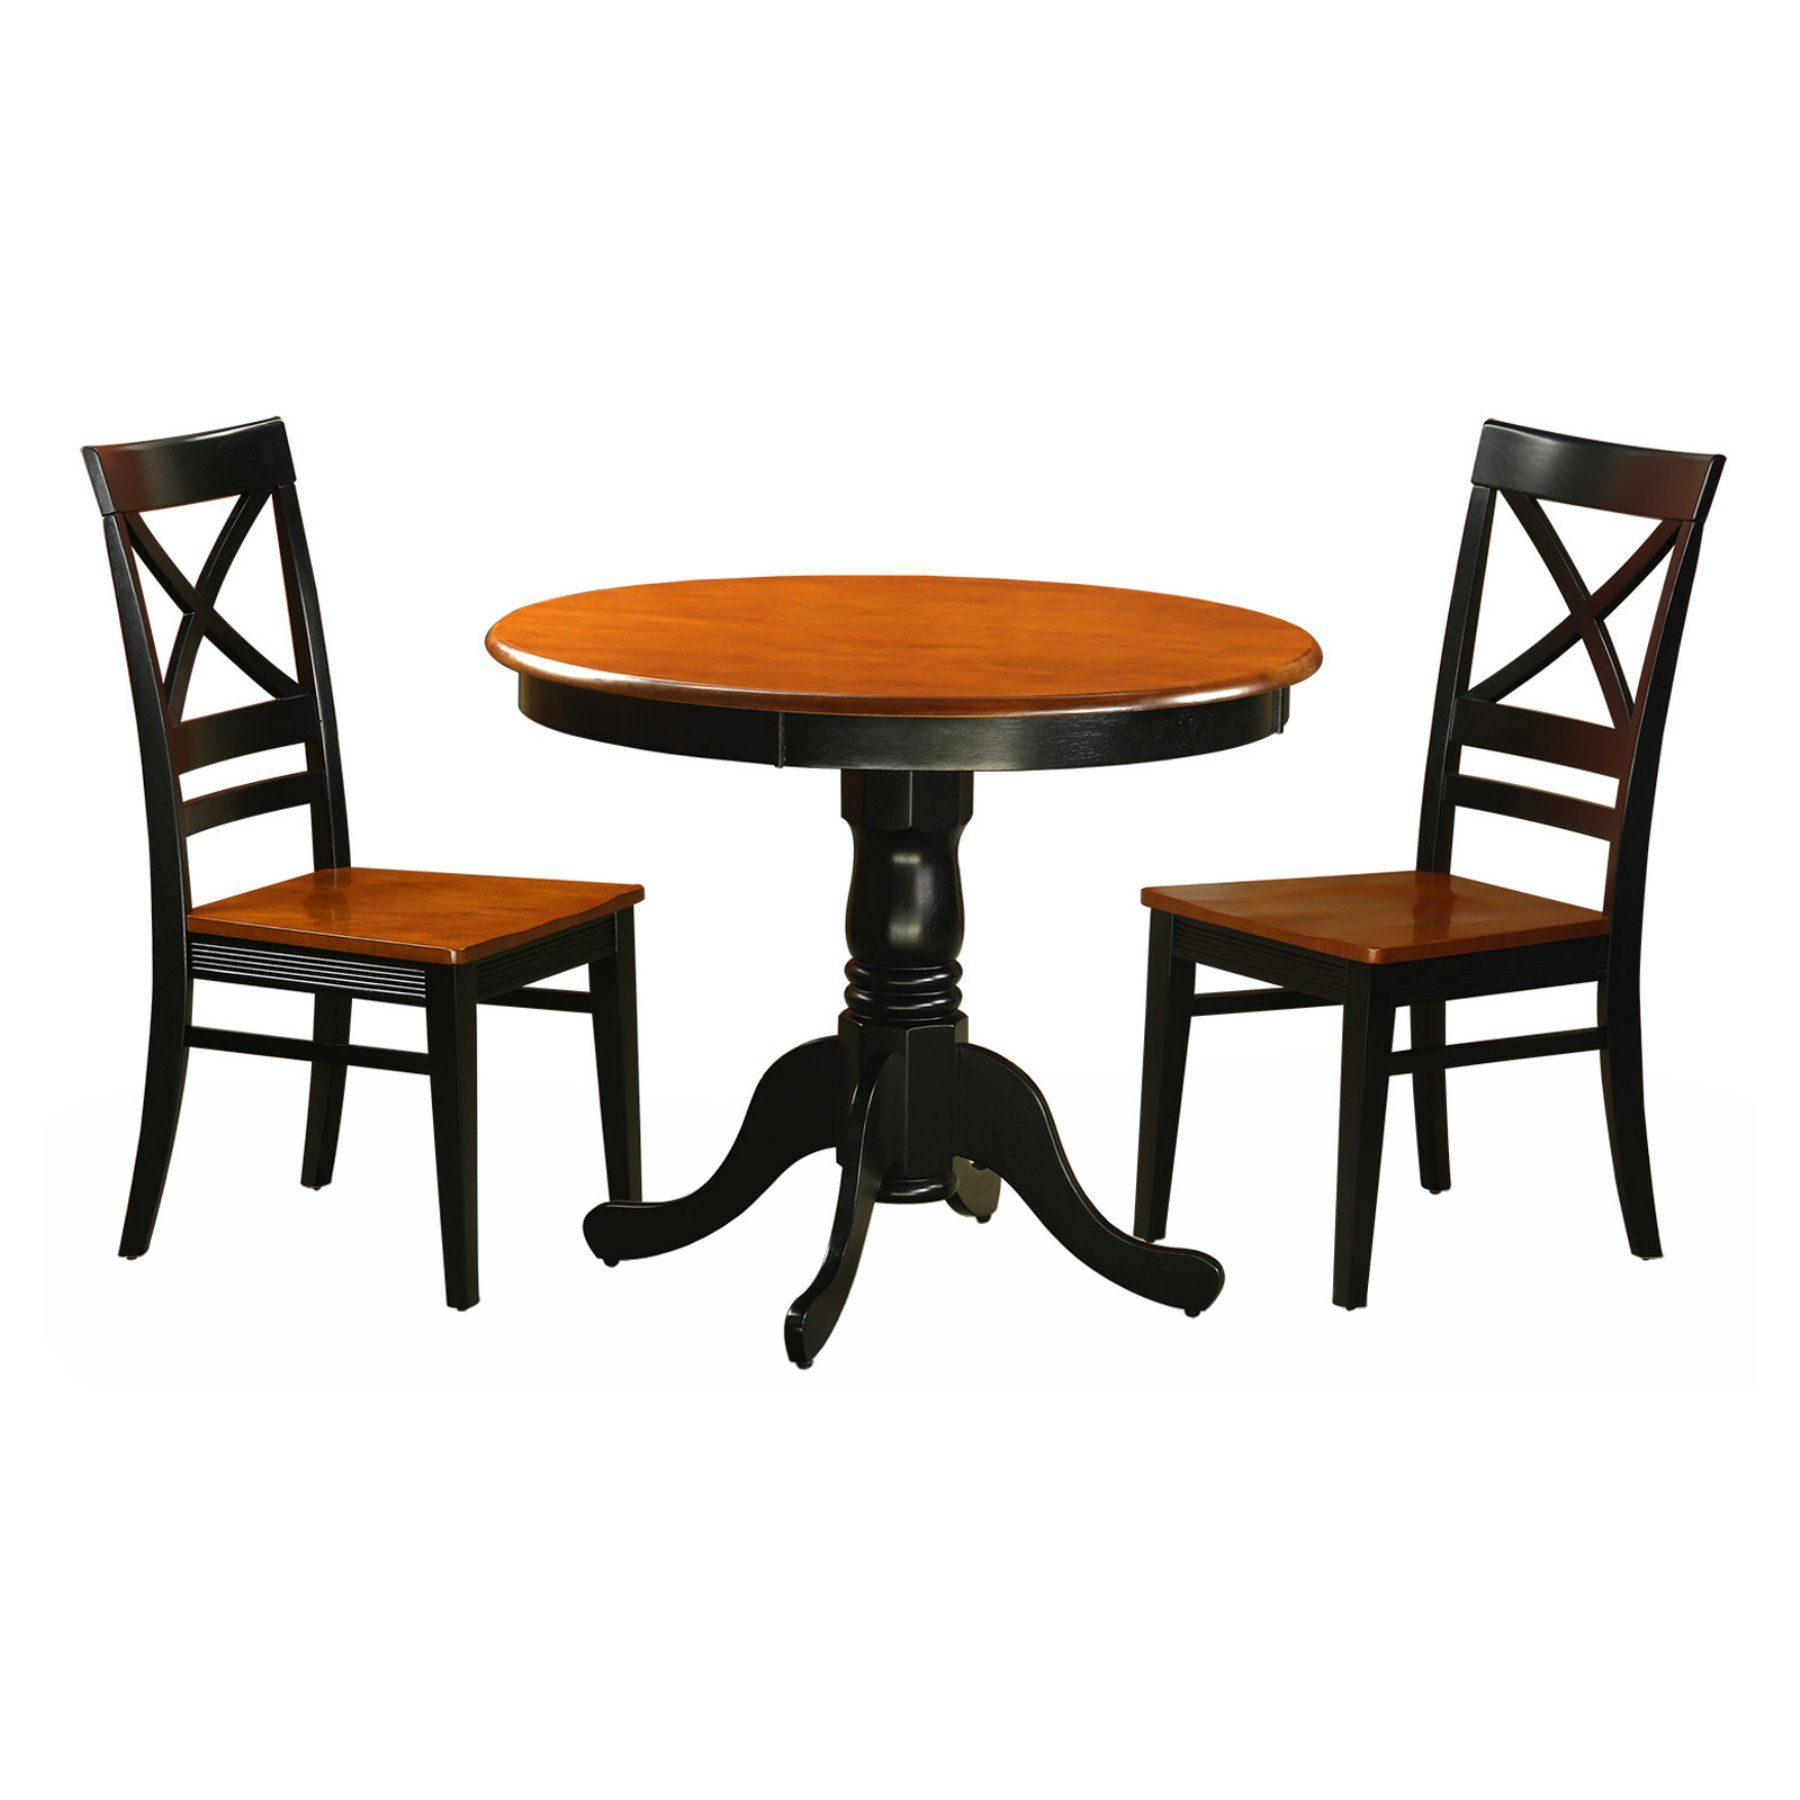 East West Furniture Antique 3 Piece Pedestal Dining Table Set With Magnificent Three Piece Dining Room Set Design Ideas